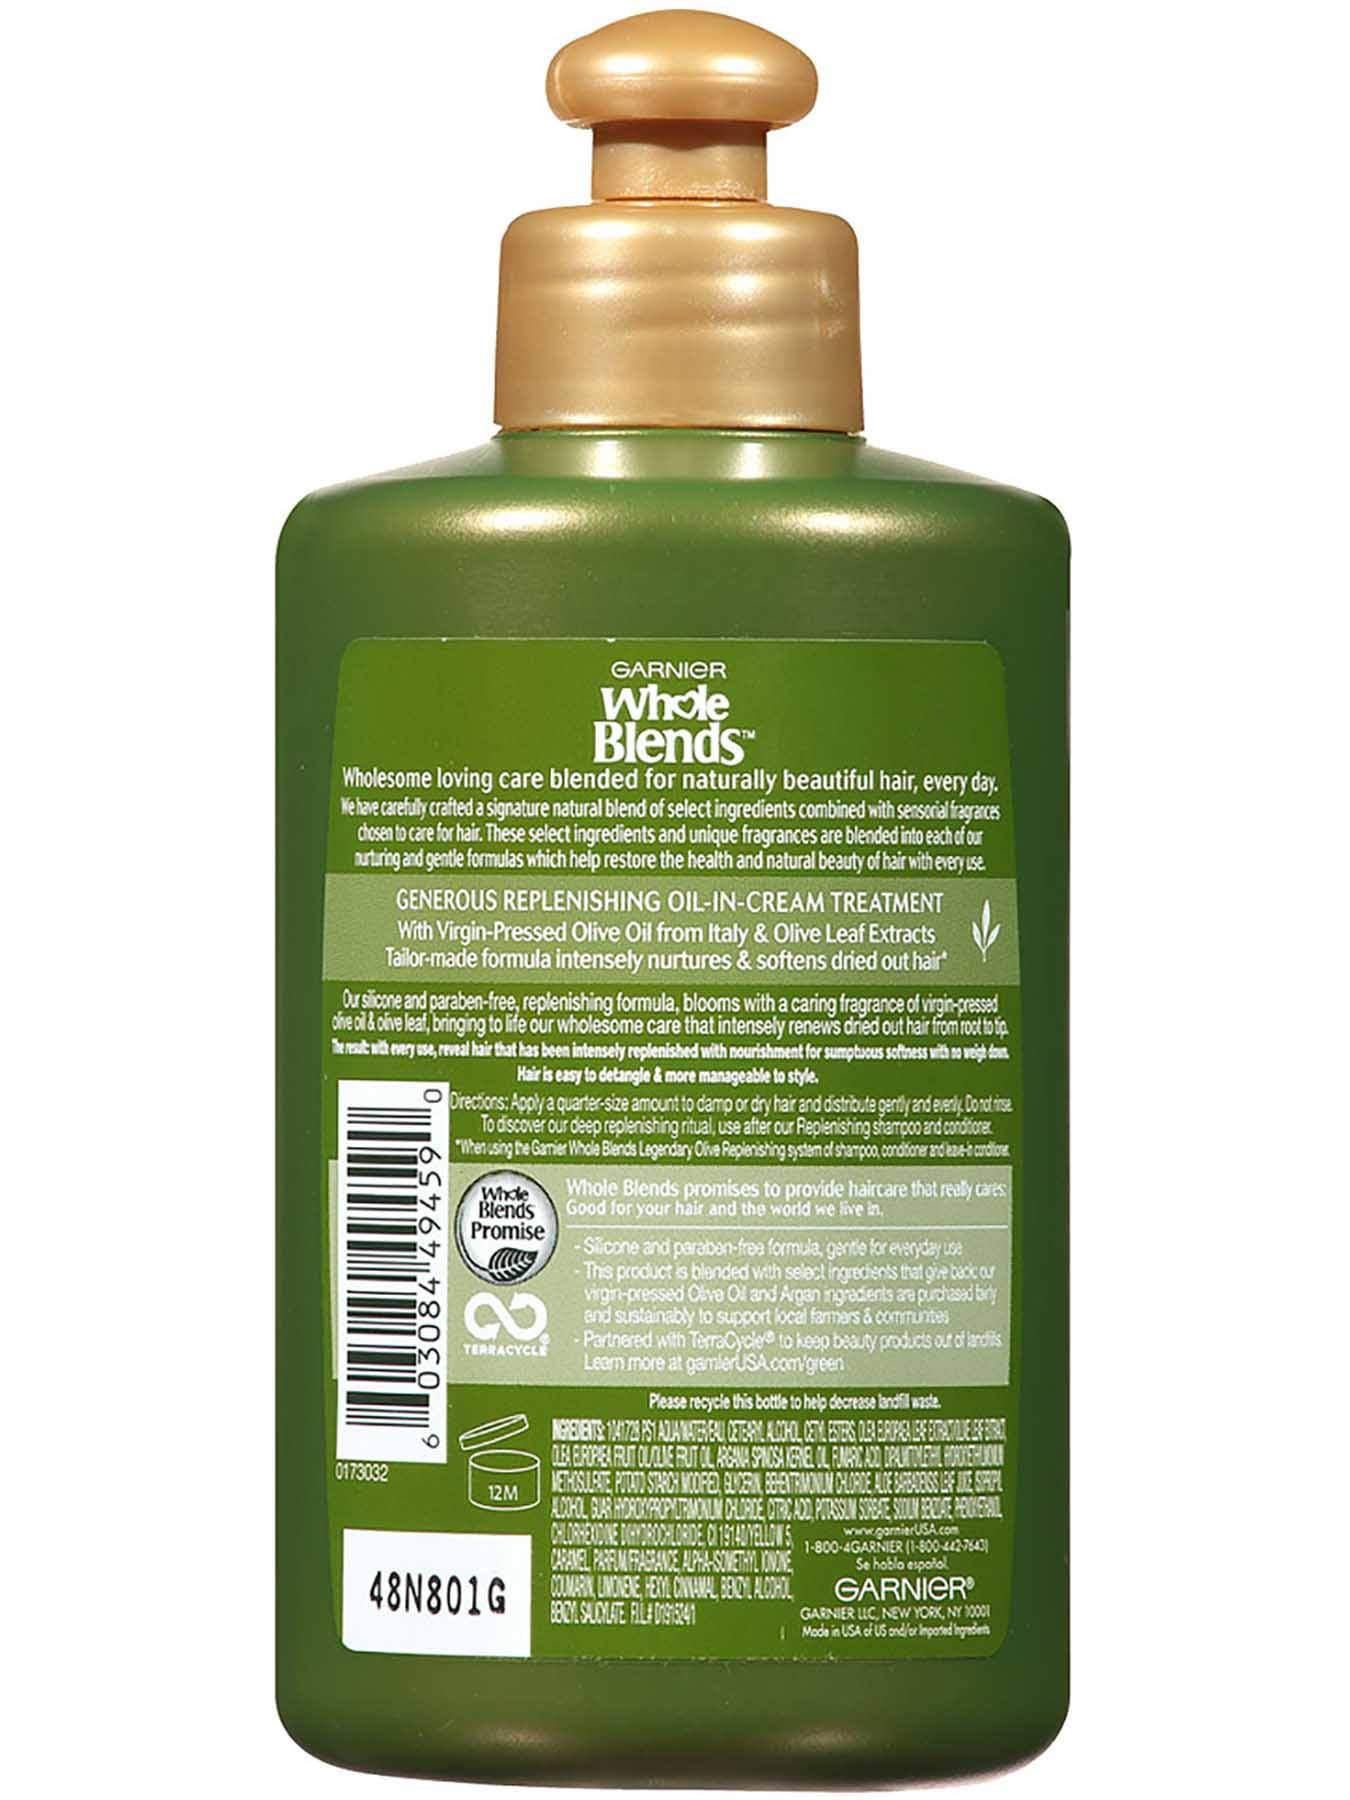 Back view of Replenishing Leave-In Conditioner with Legendary Virgin-Pressed Olive Oil and Olive Leaf Extracts.